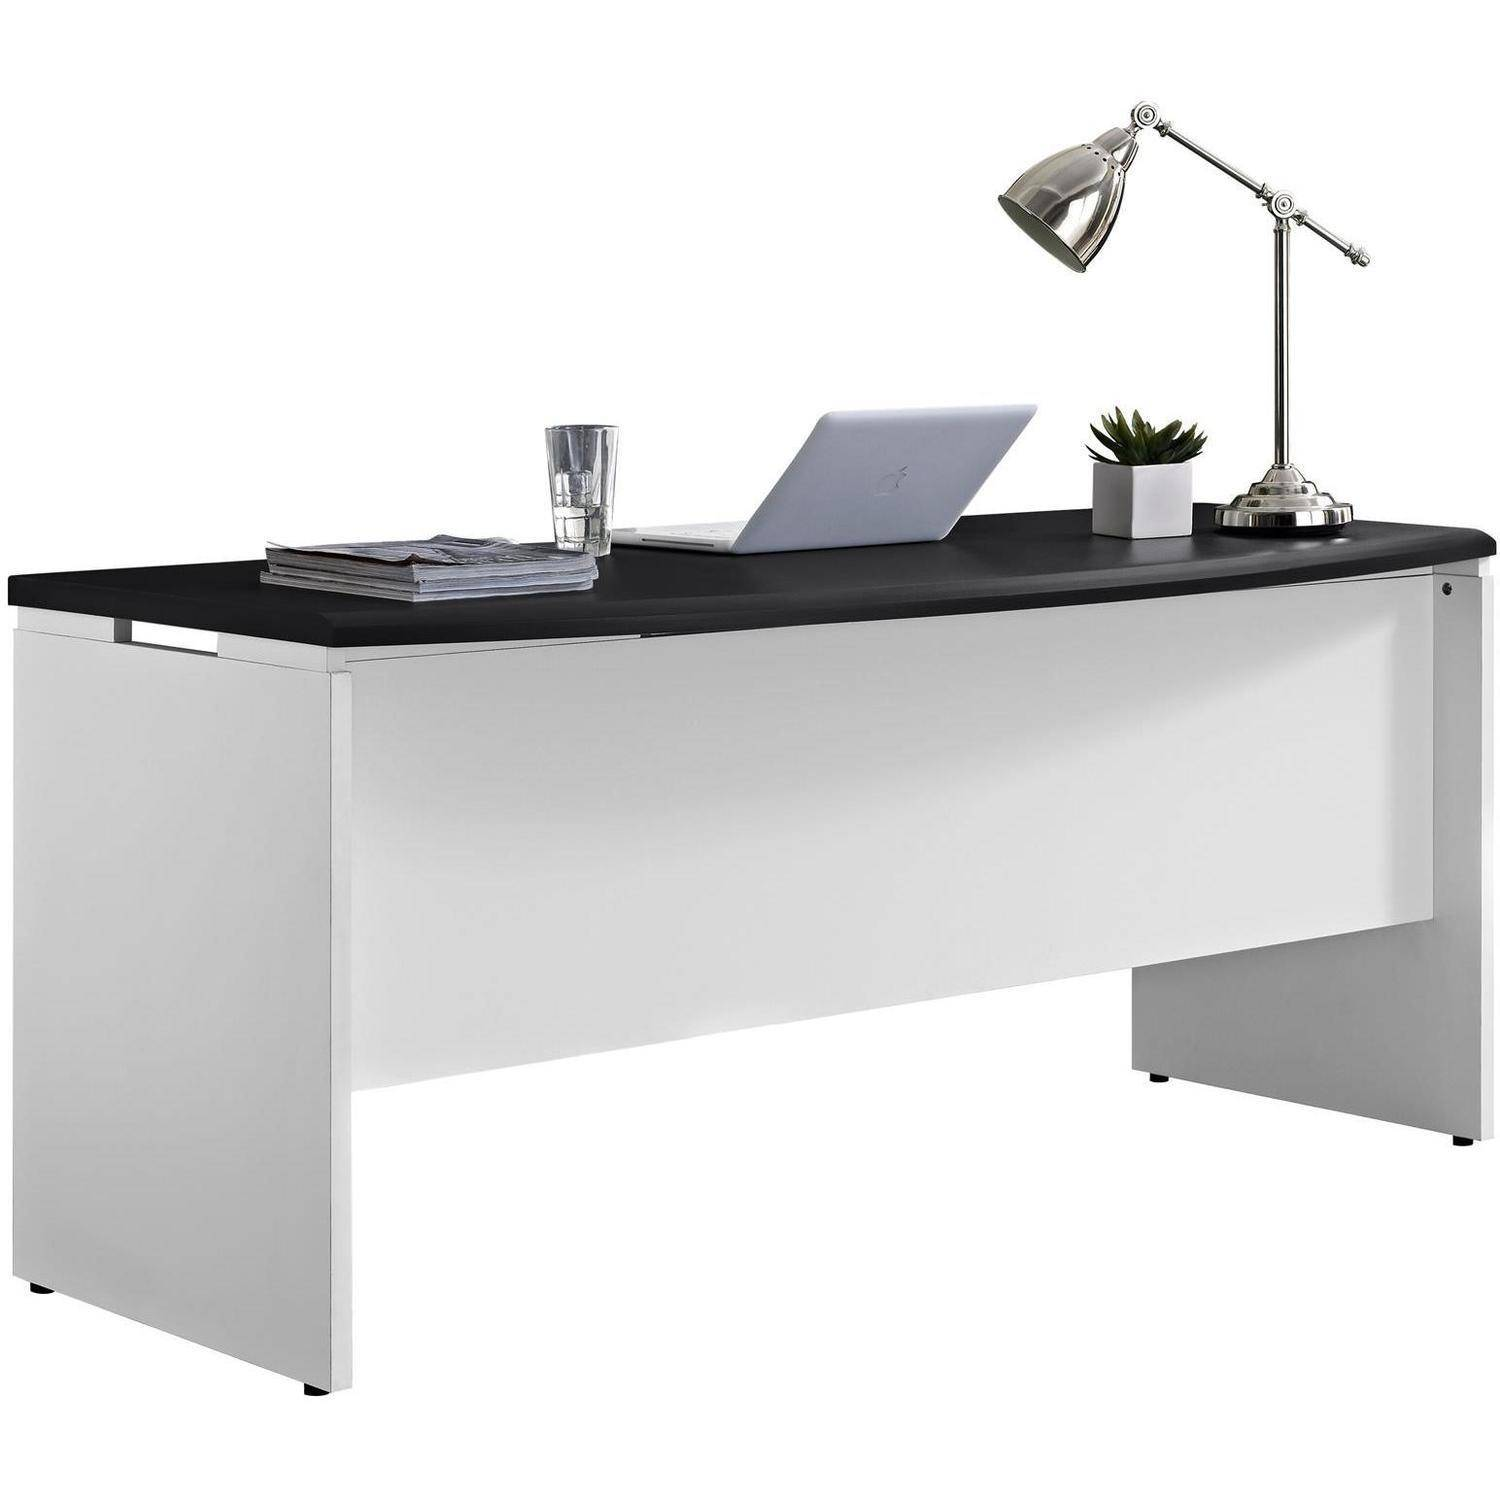 stand product desk ambience executive wood height adjustable modern sit dor to